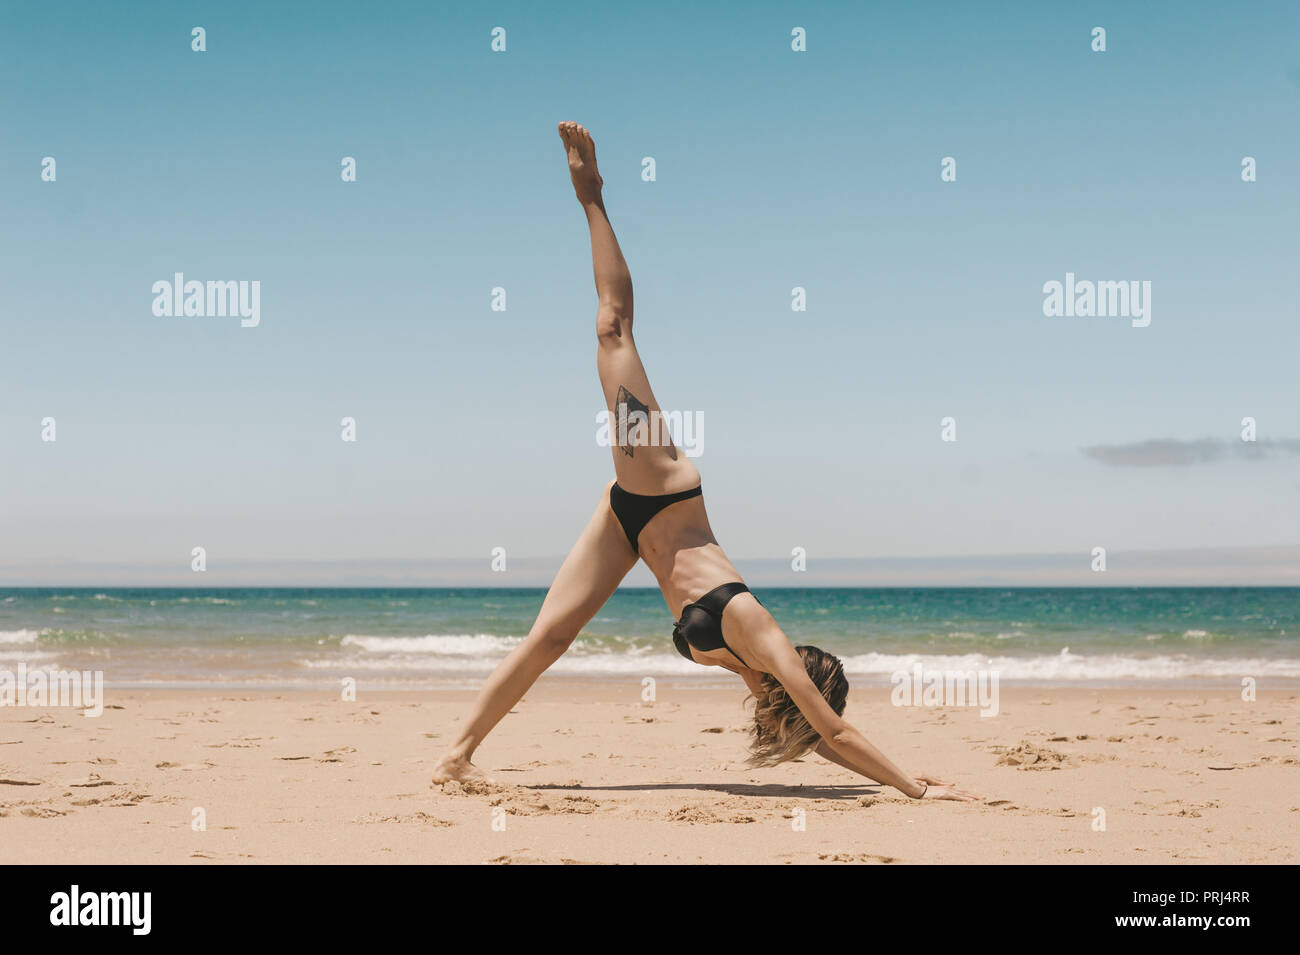 side view of woman practicing downward facing dog yoga pose on sandy beach - Stock Image